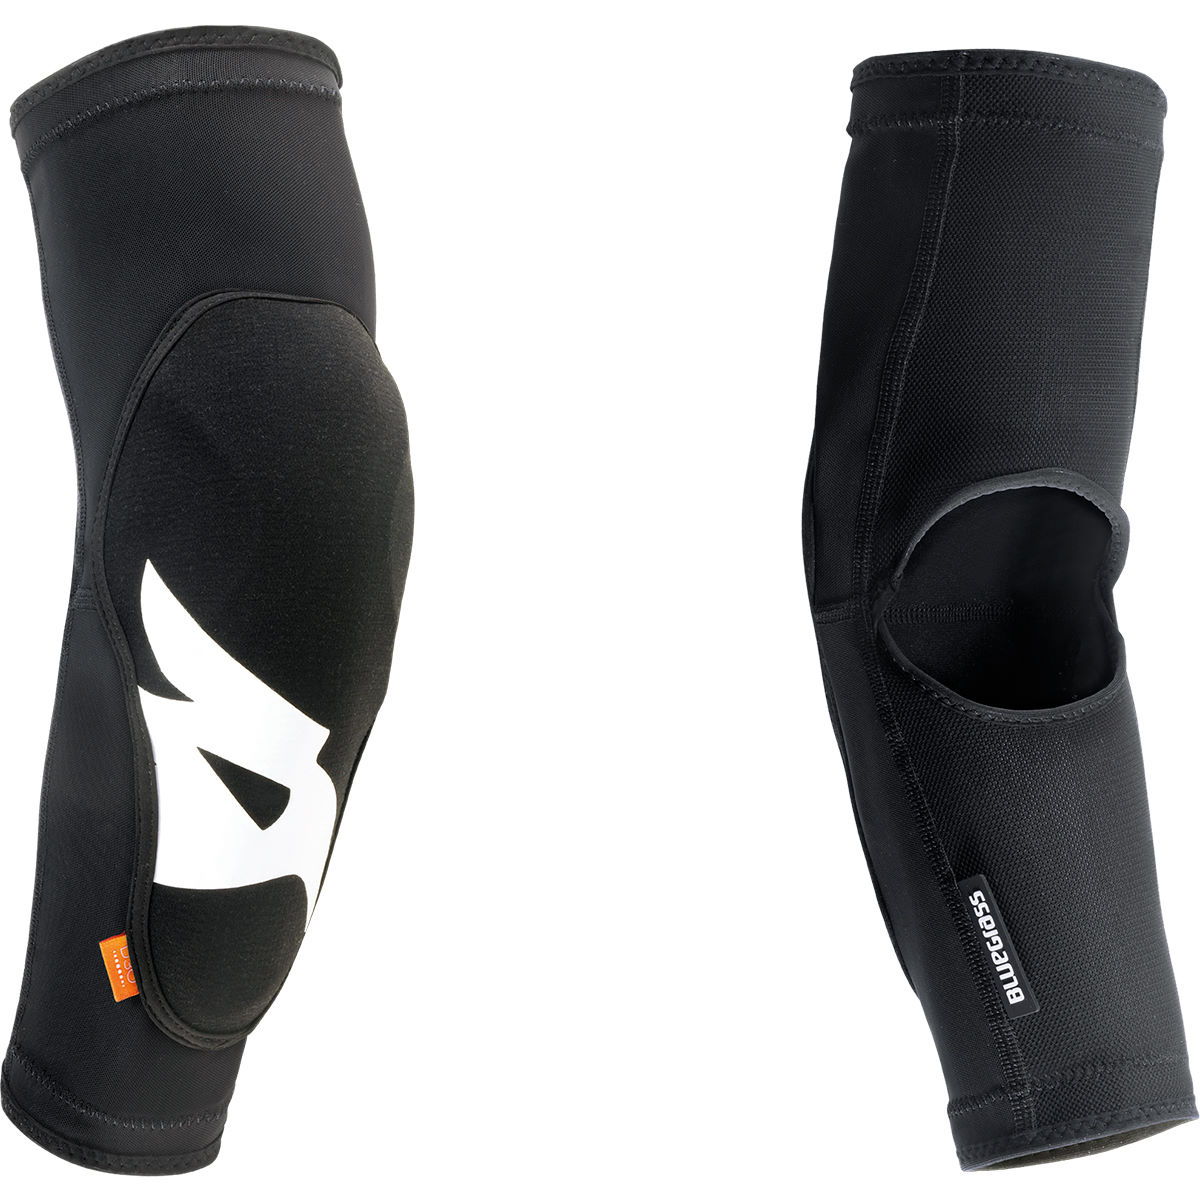 Bluegrass Skinny D30 Elbow Guards - Coderas